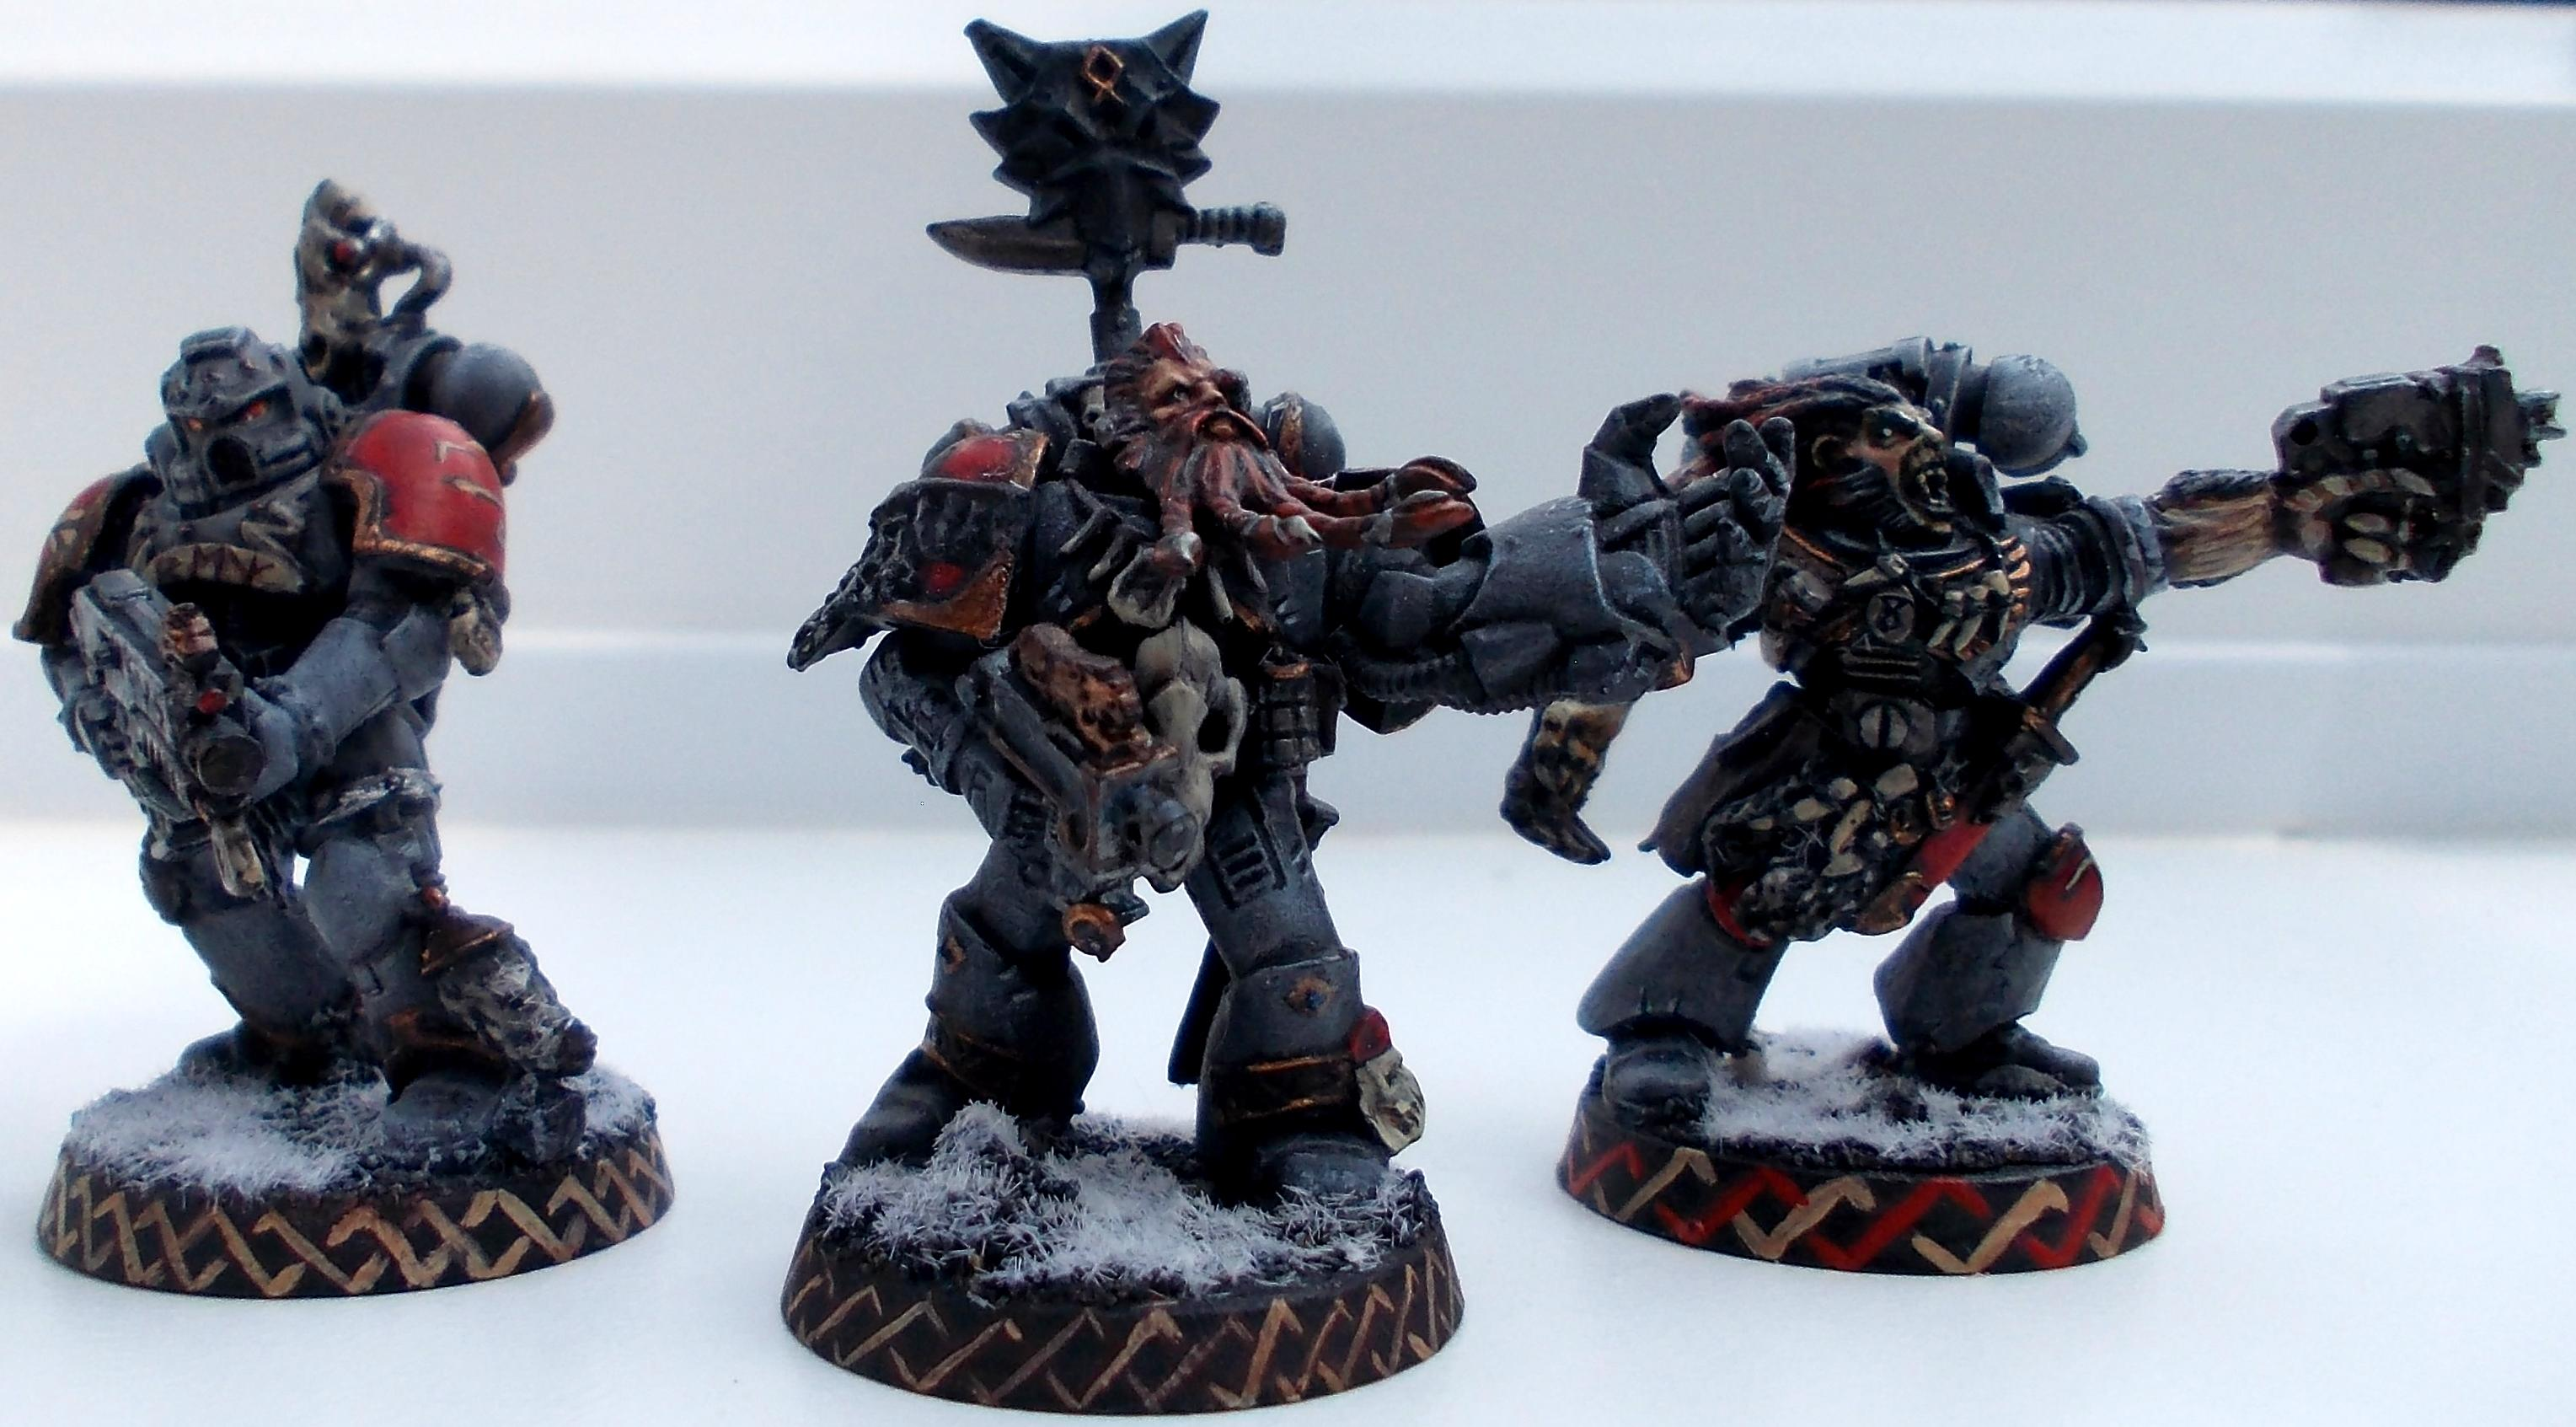 Freehand, Space Wolves, Wulfen